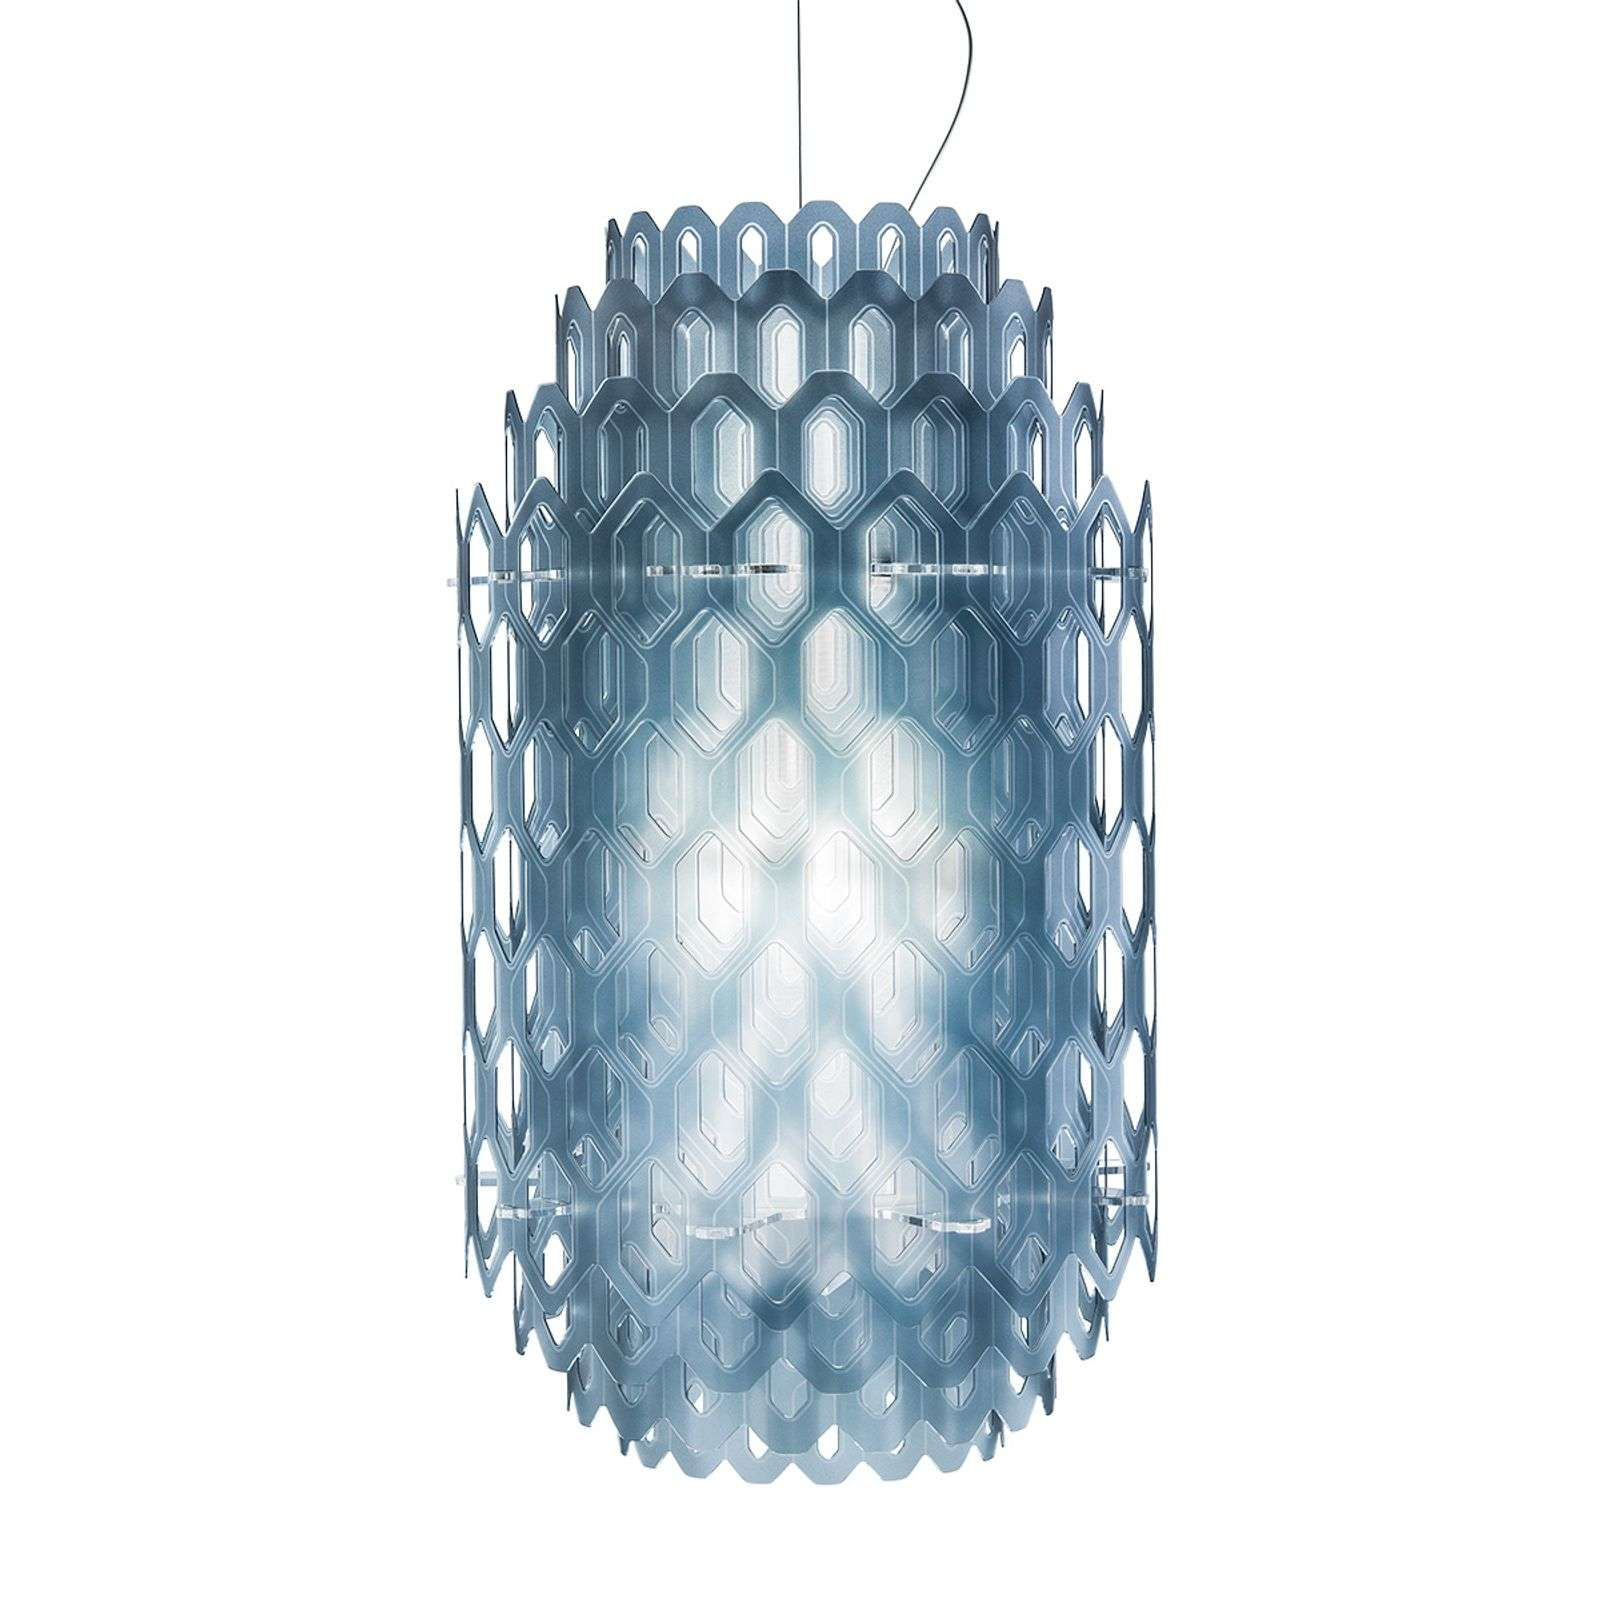 Suspension LED design Chantal, bleu